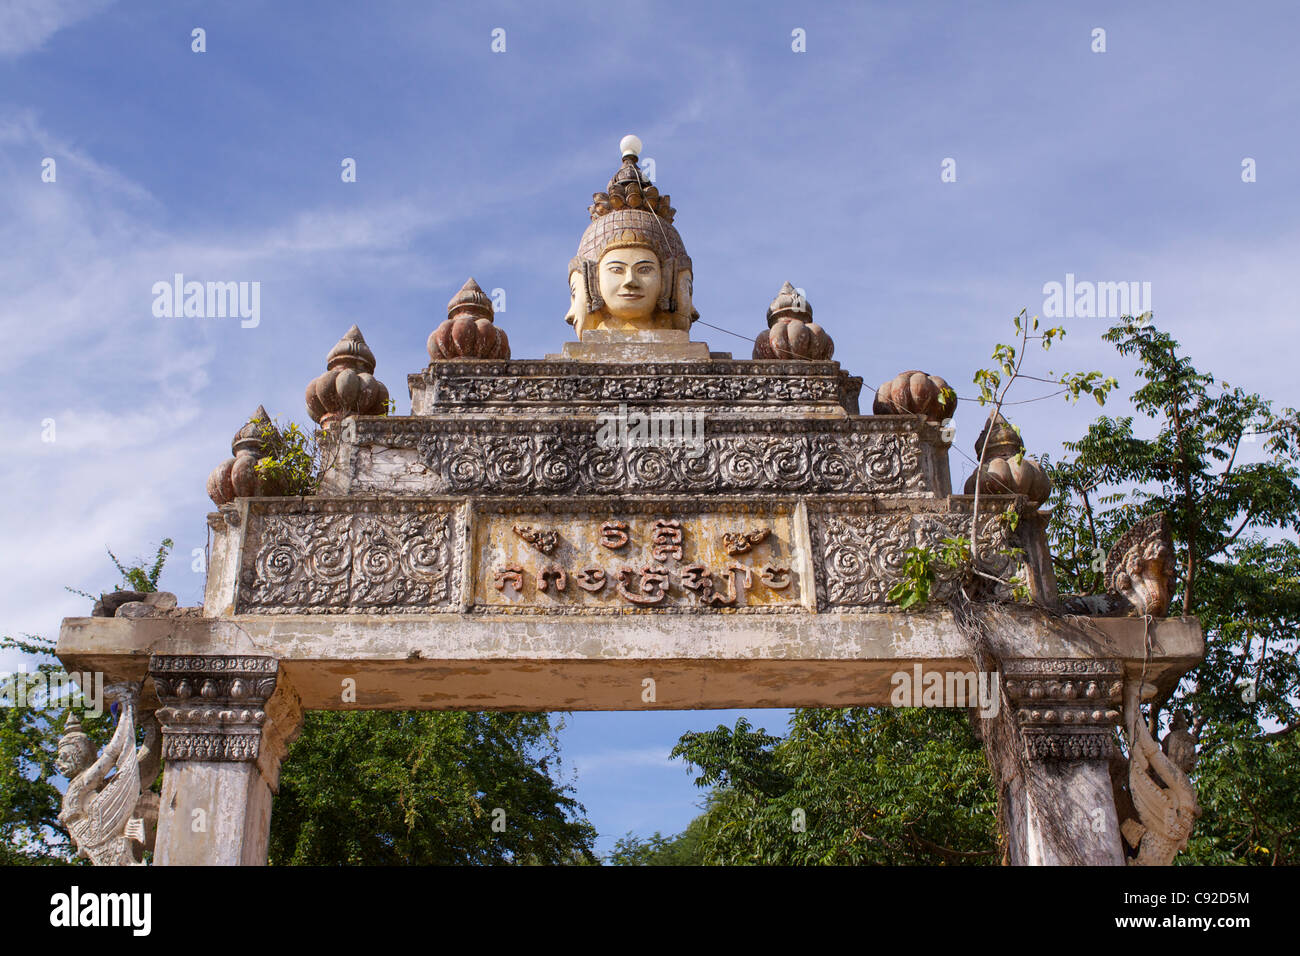 The Khmer entrance gate to Kampong Tralach Krom has famous ceramic detailing. - Stock Image